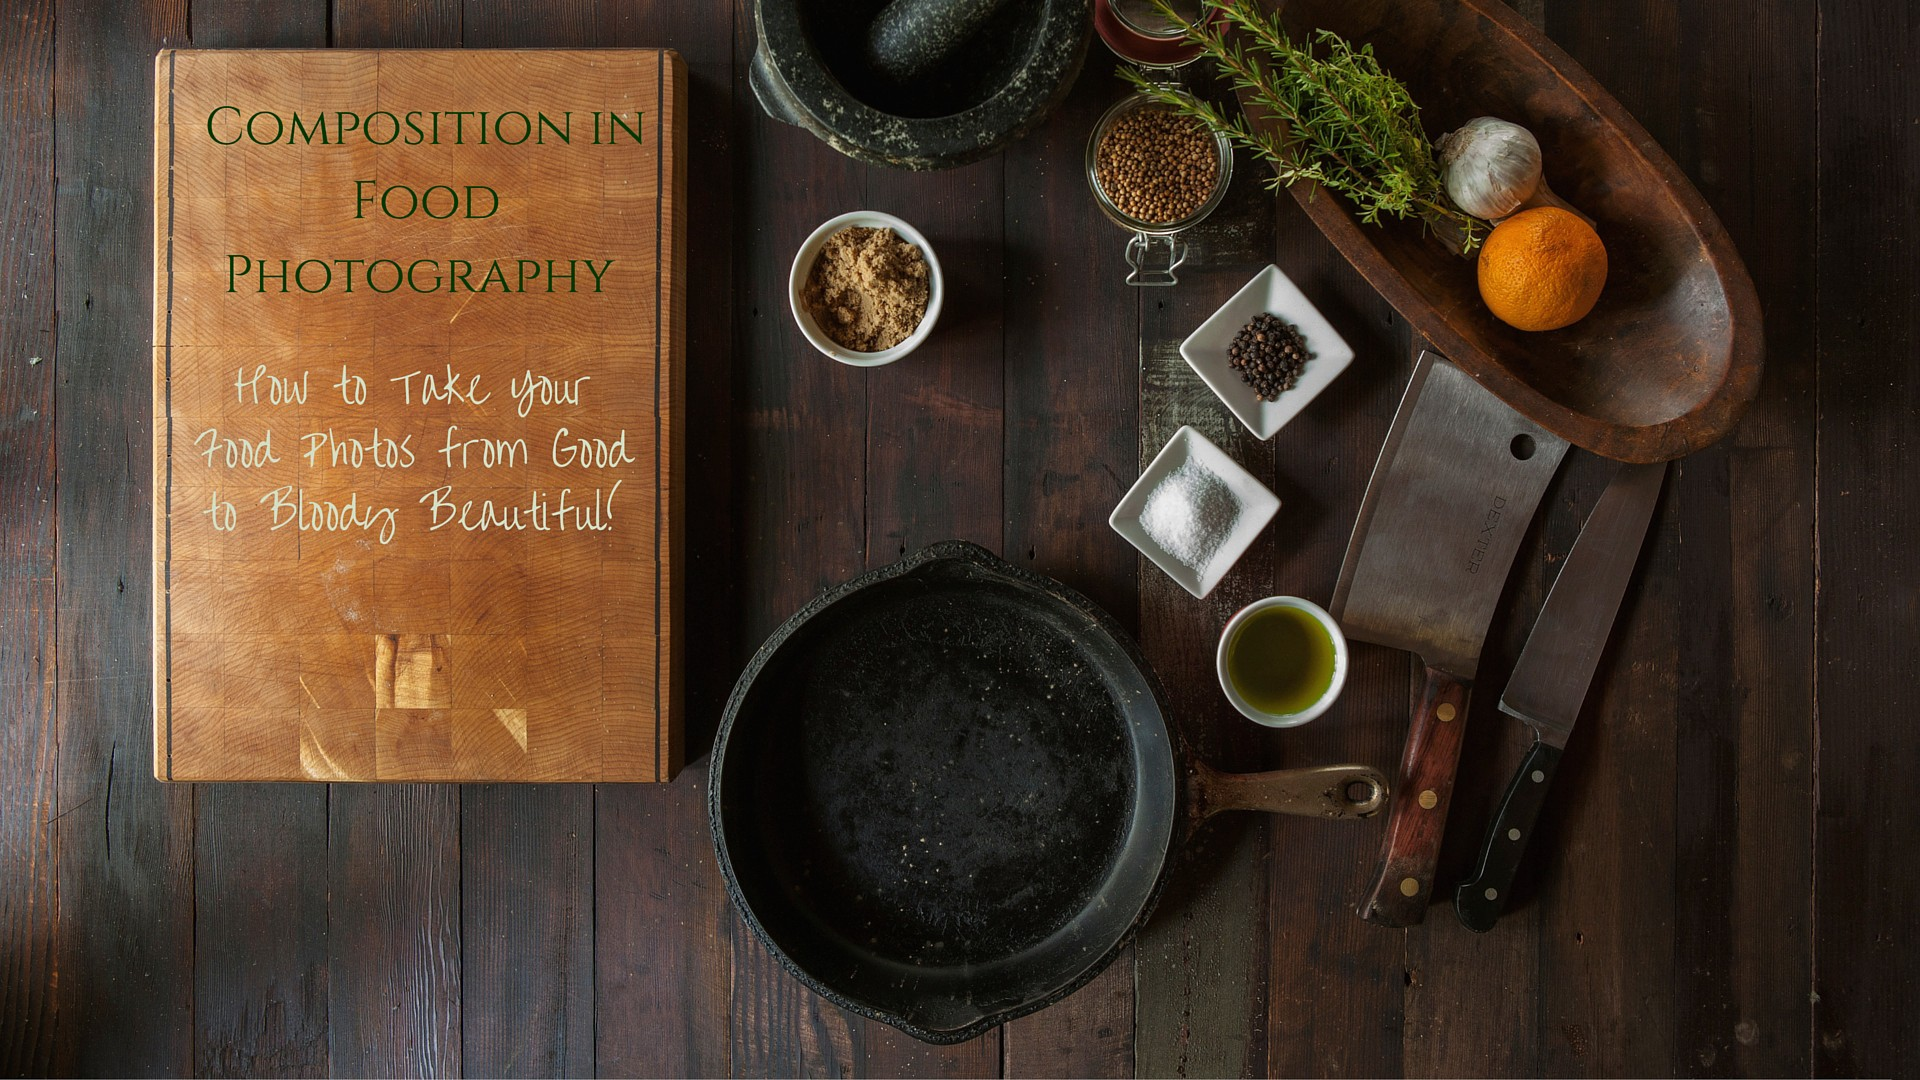 The Beginners Guide To Composition In Food Photography How To Transform Your Food Photos From Good To Bloody Beautiful By Ramya Menon Cucumbertown Magazine Archive Medium